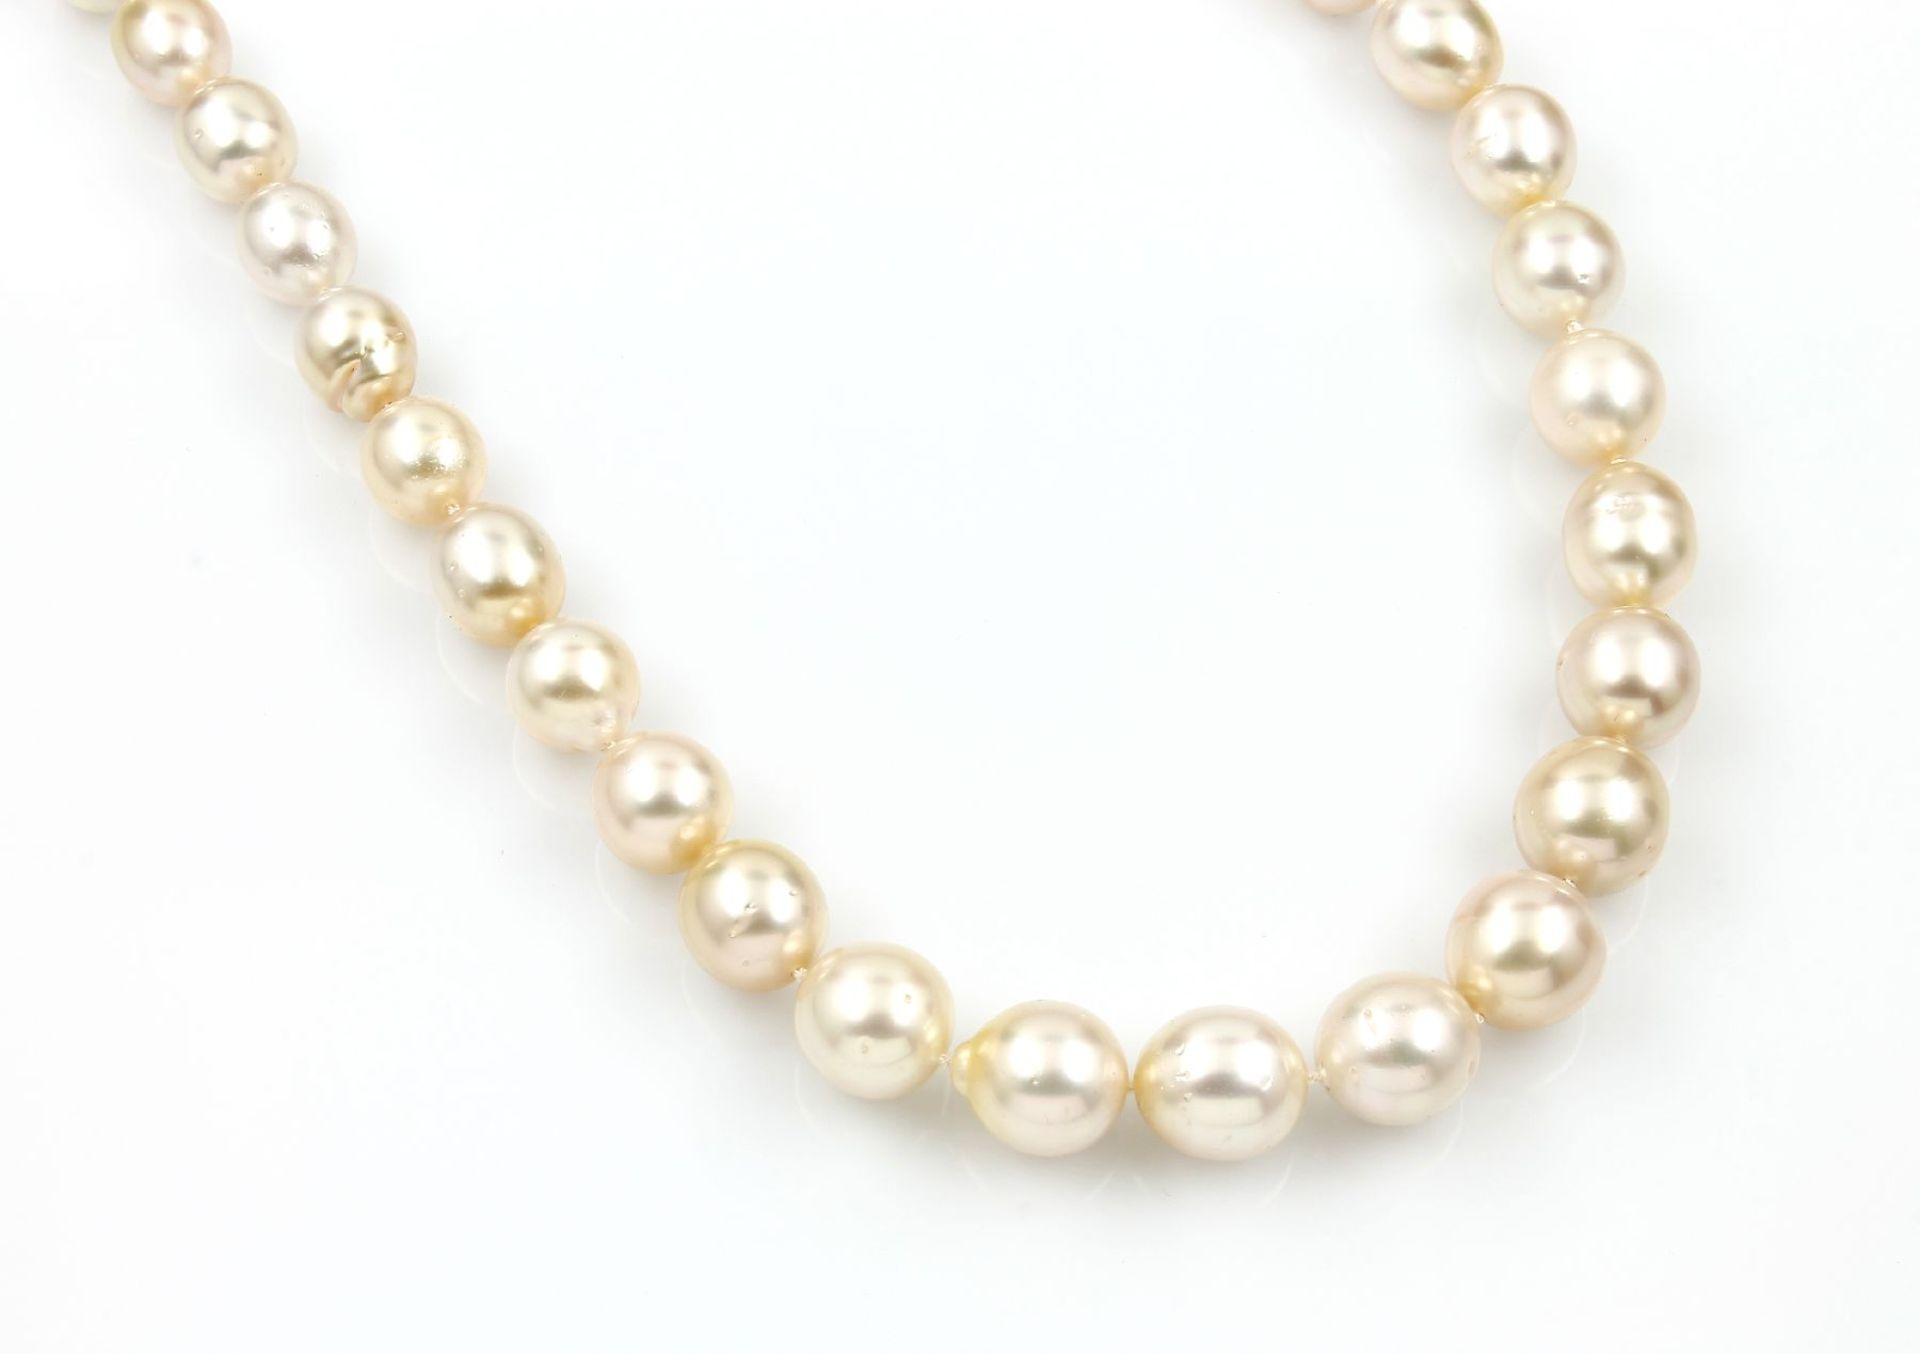 Los 31501 - Necklace with cultured south seas pearls and brilliants , creamcoloured cultured south seas